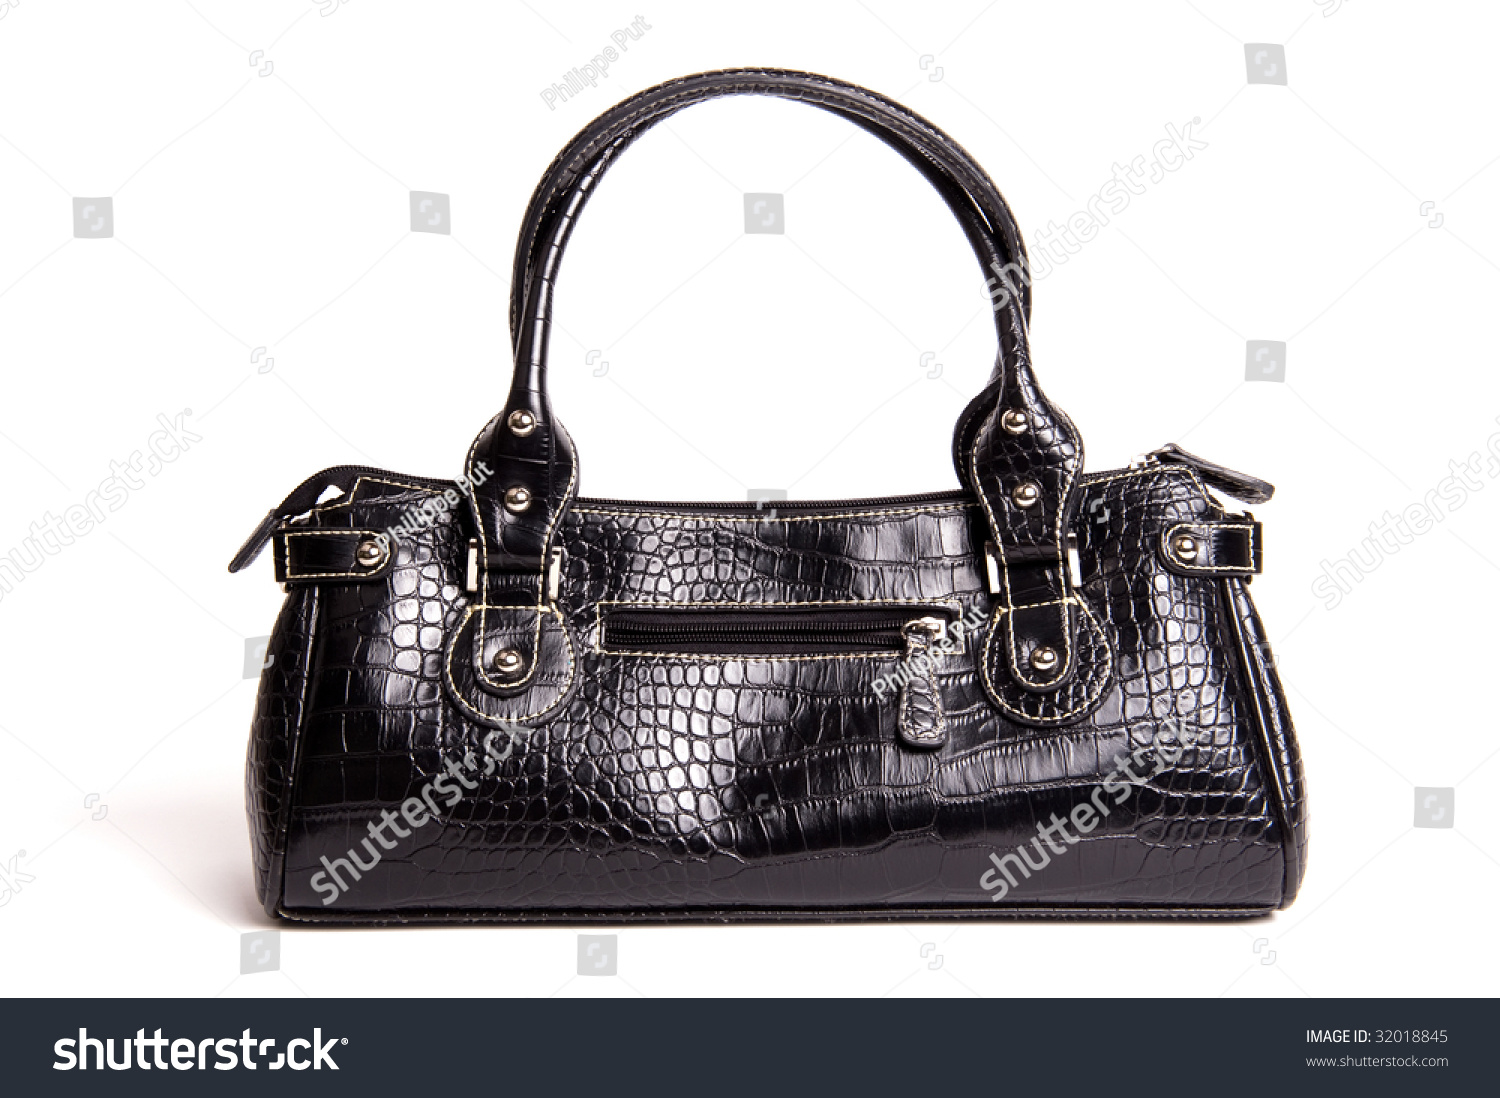 0ec42c77 Fancy Bag Made Out Fake Crocodile Stock Photo (Edit Now) 32018845 ...